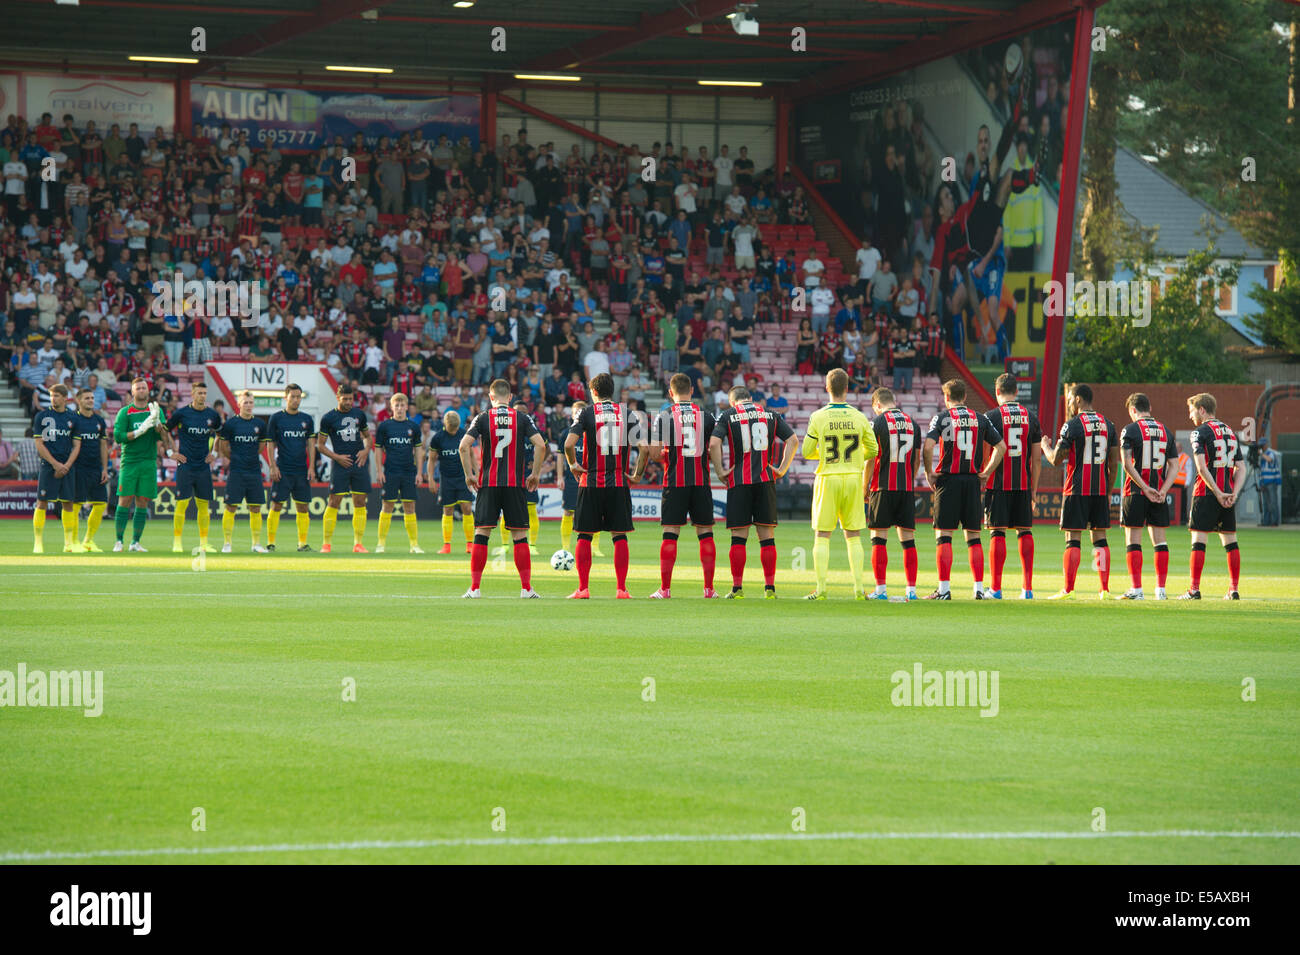 Bournemouth, Dorset, UK. 25th July, 2014. Pre Season Friendly. AFC Bournemouth versus Southampton. The players stand - Stock Image